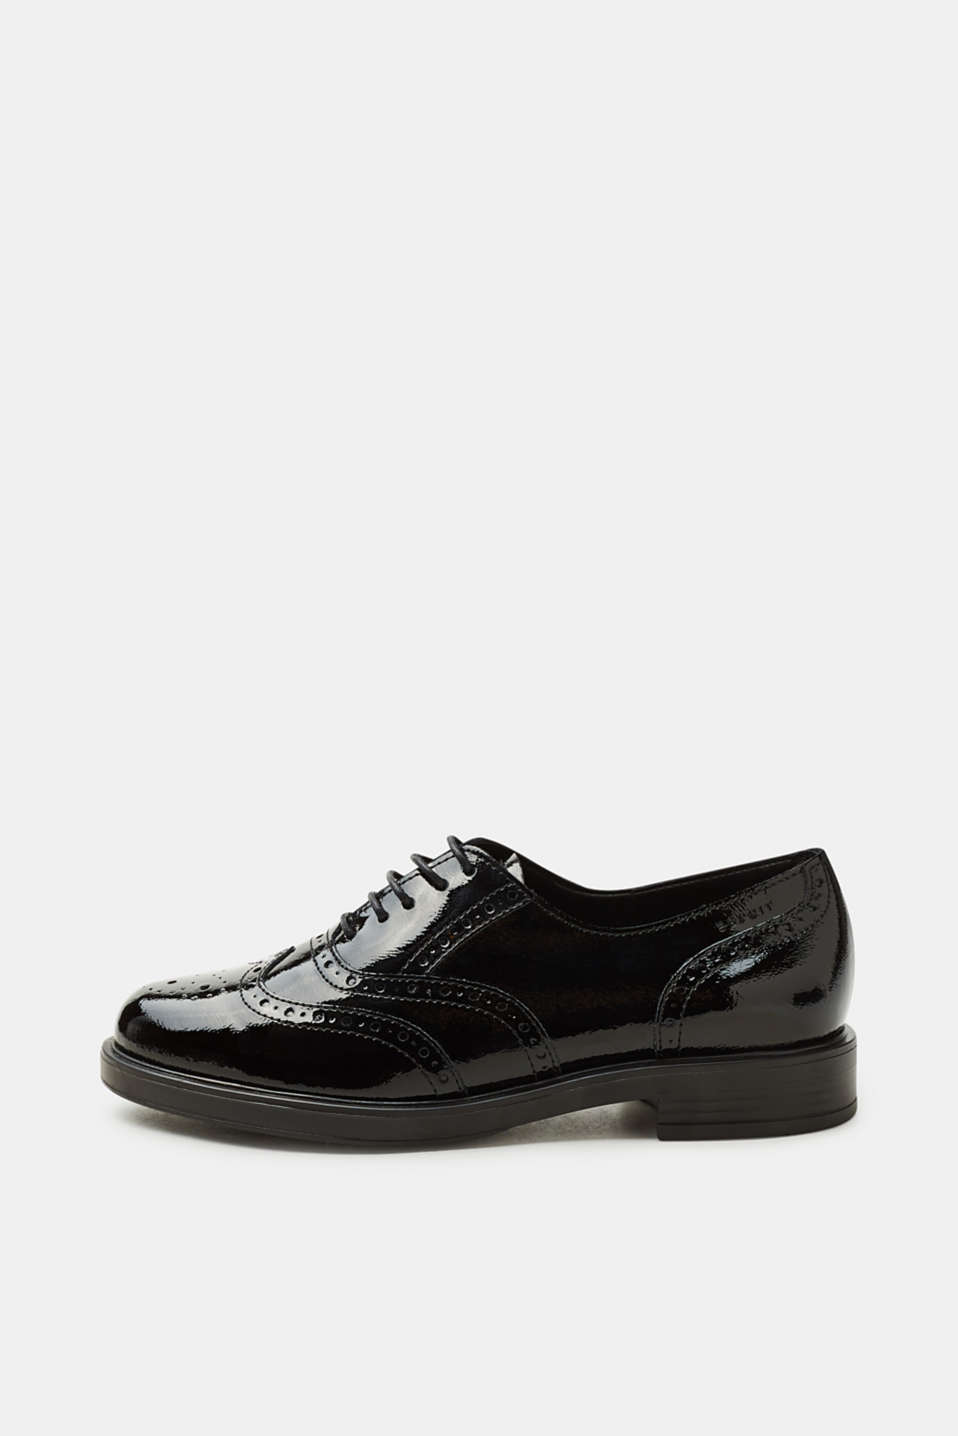 Esprit - Patent leather brogues with a brogue pattern